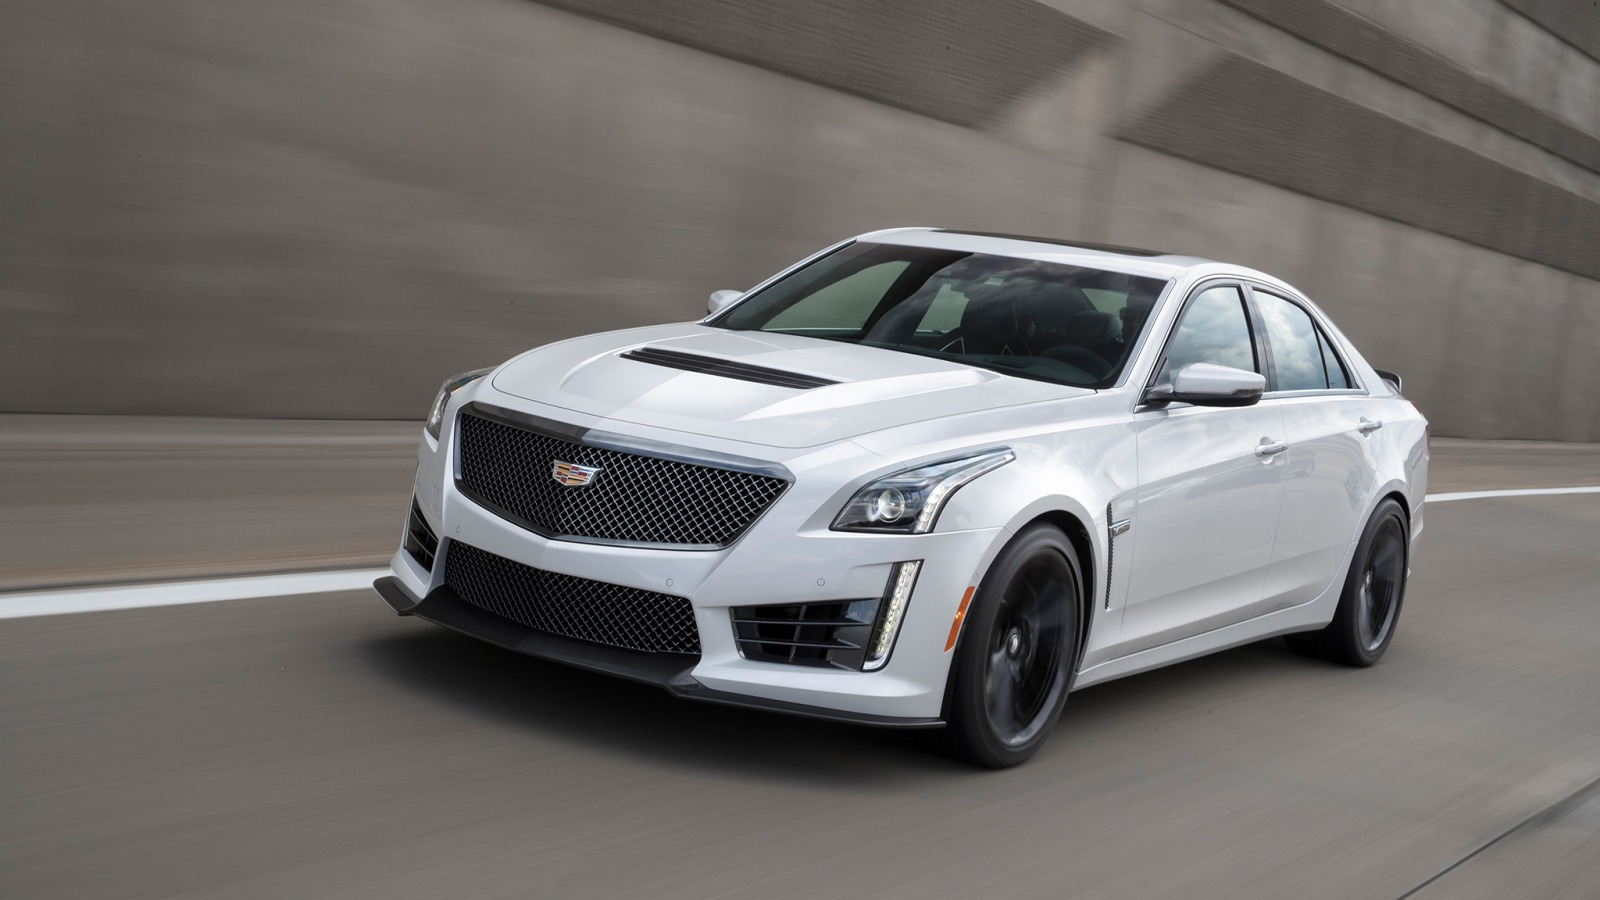 The 2019 Cadillac CTS-V: A Different Kind of Muscle Car